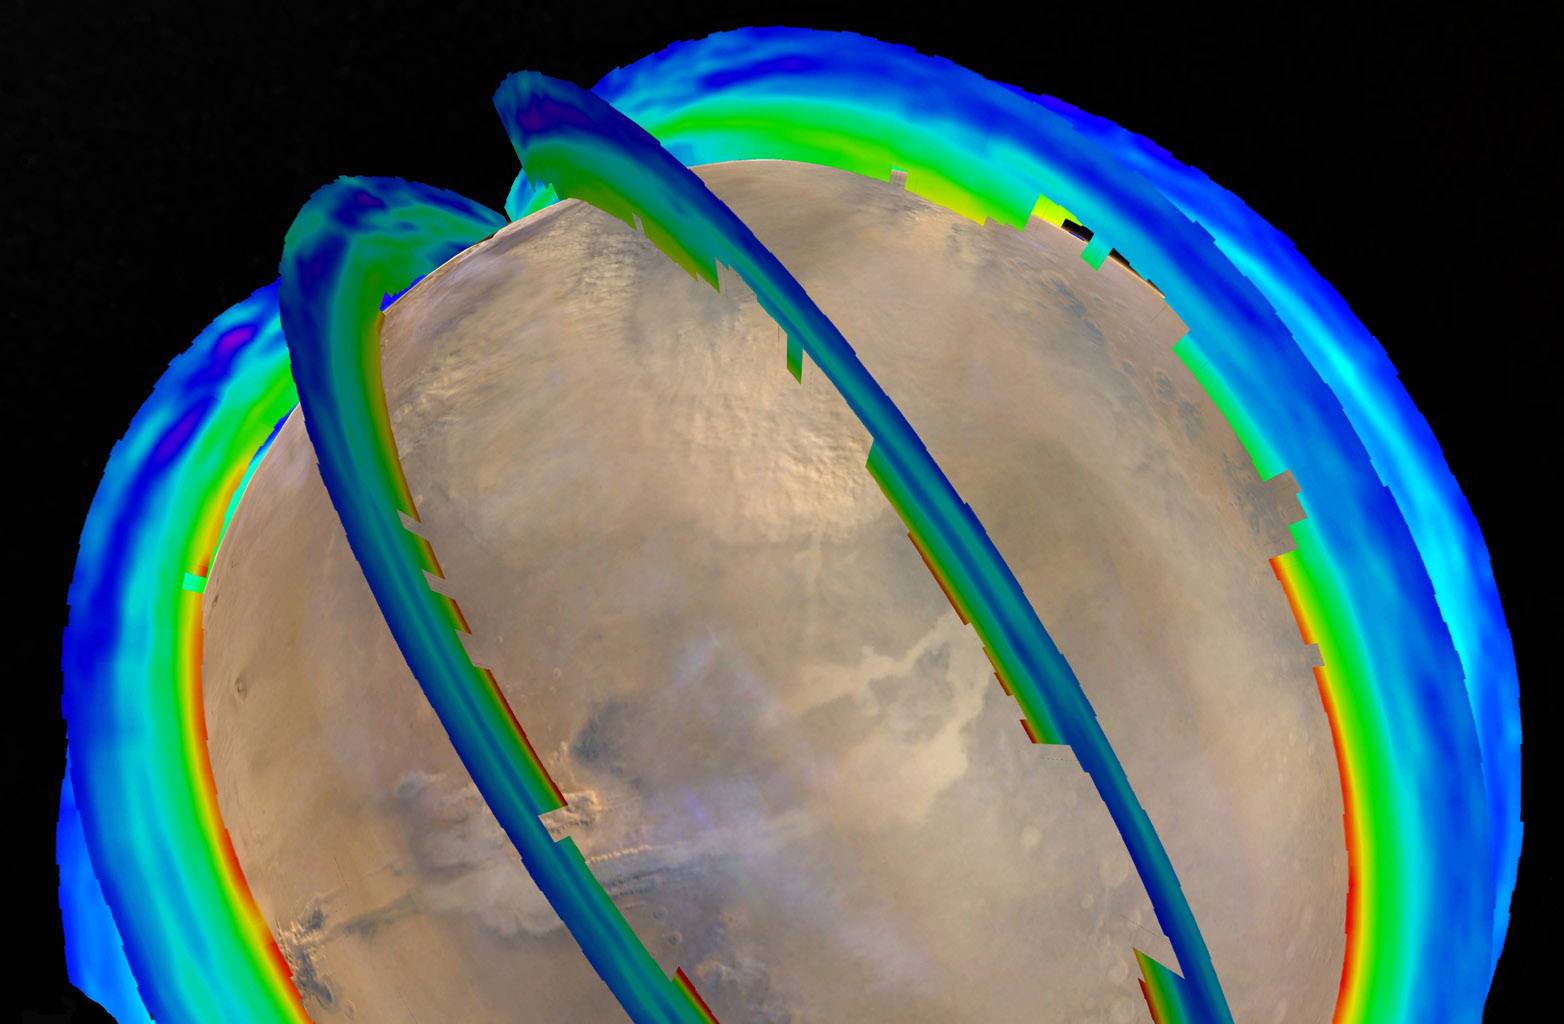 This graphic overlays Martian atmospheric temperature data as curtains over an image of Mars taken during a regional dust storm. Temperature data and global image were both recorded on Oct. 18, 2014, by NASA's Mars Reconnaissance Orbiter spacecraft.